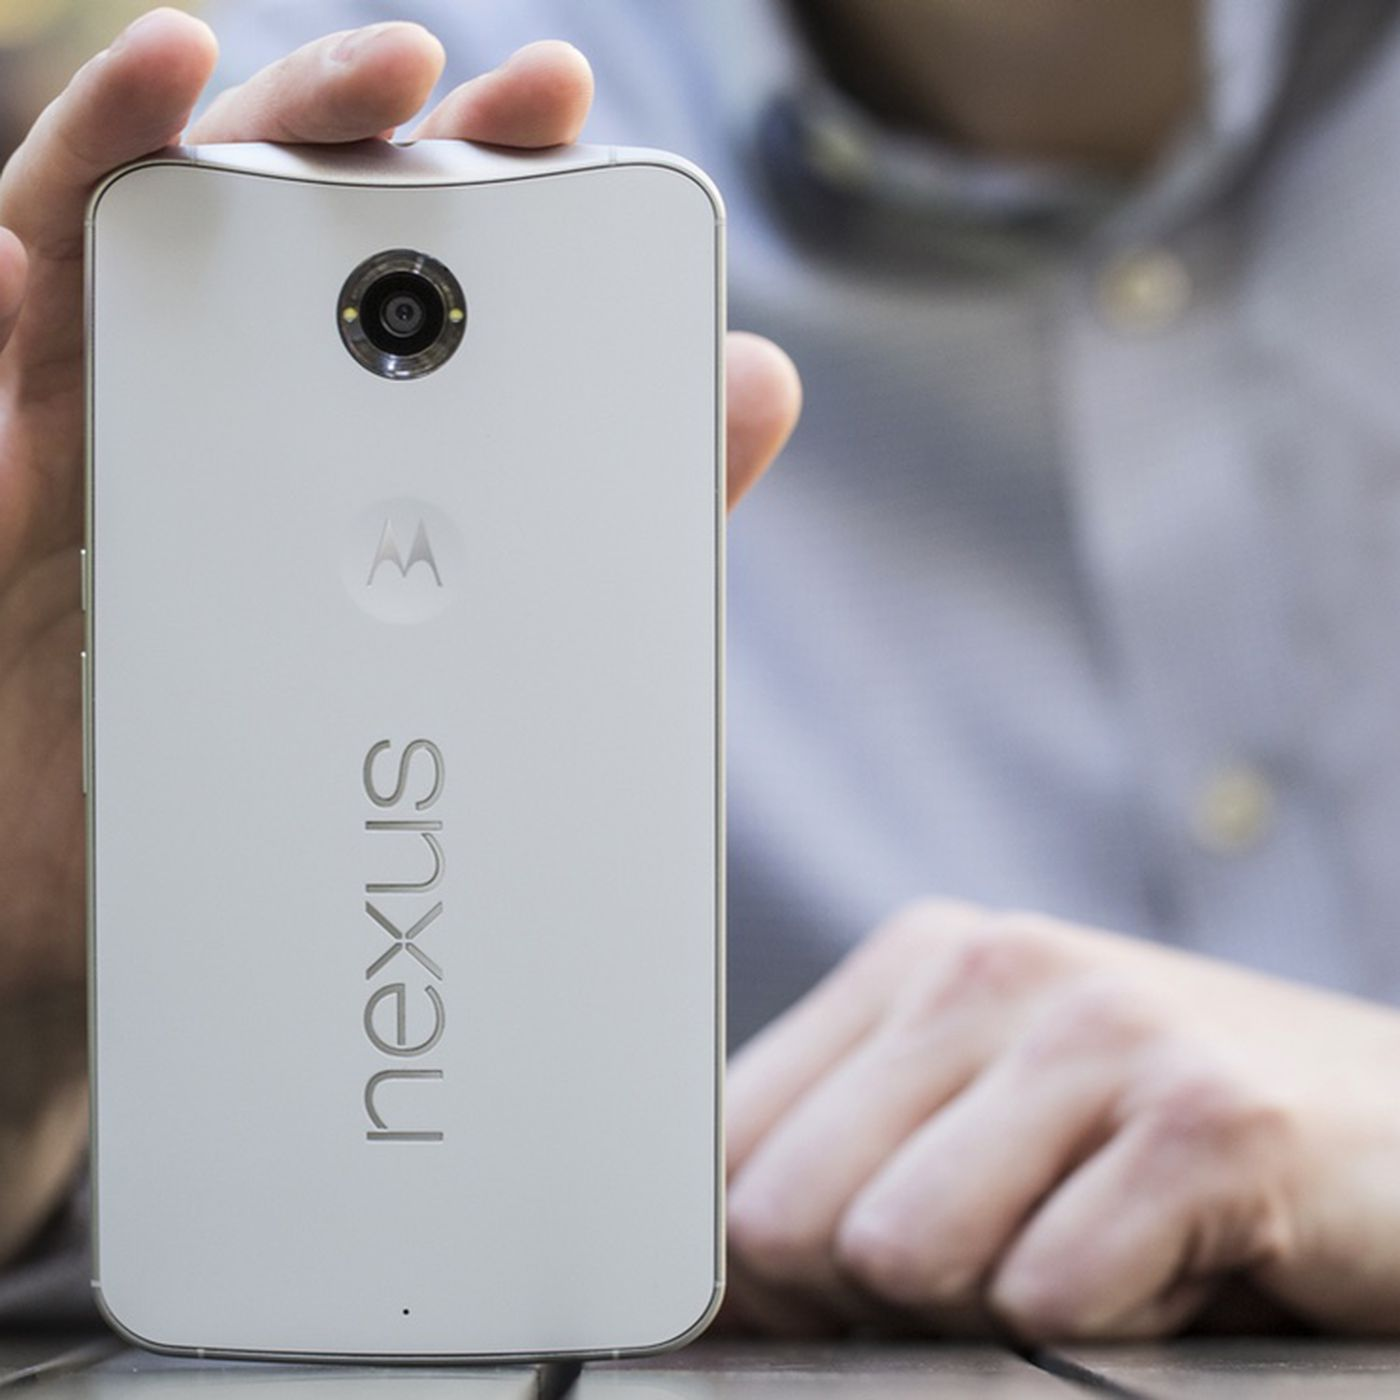 Nexus 6 review | The Verge